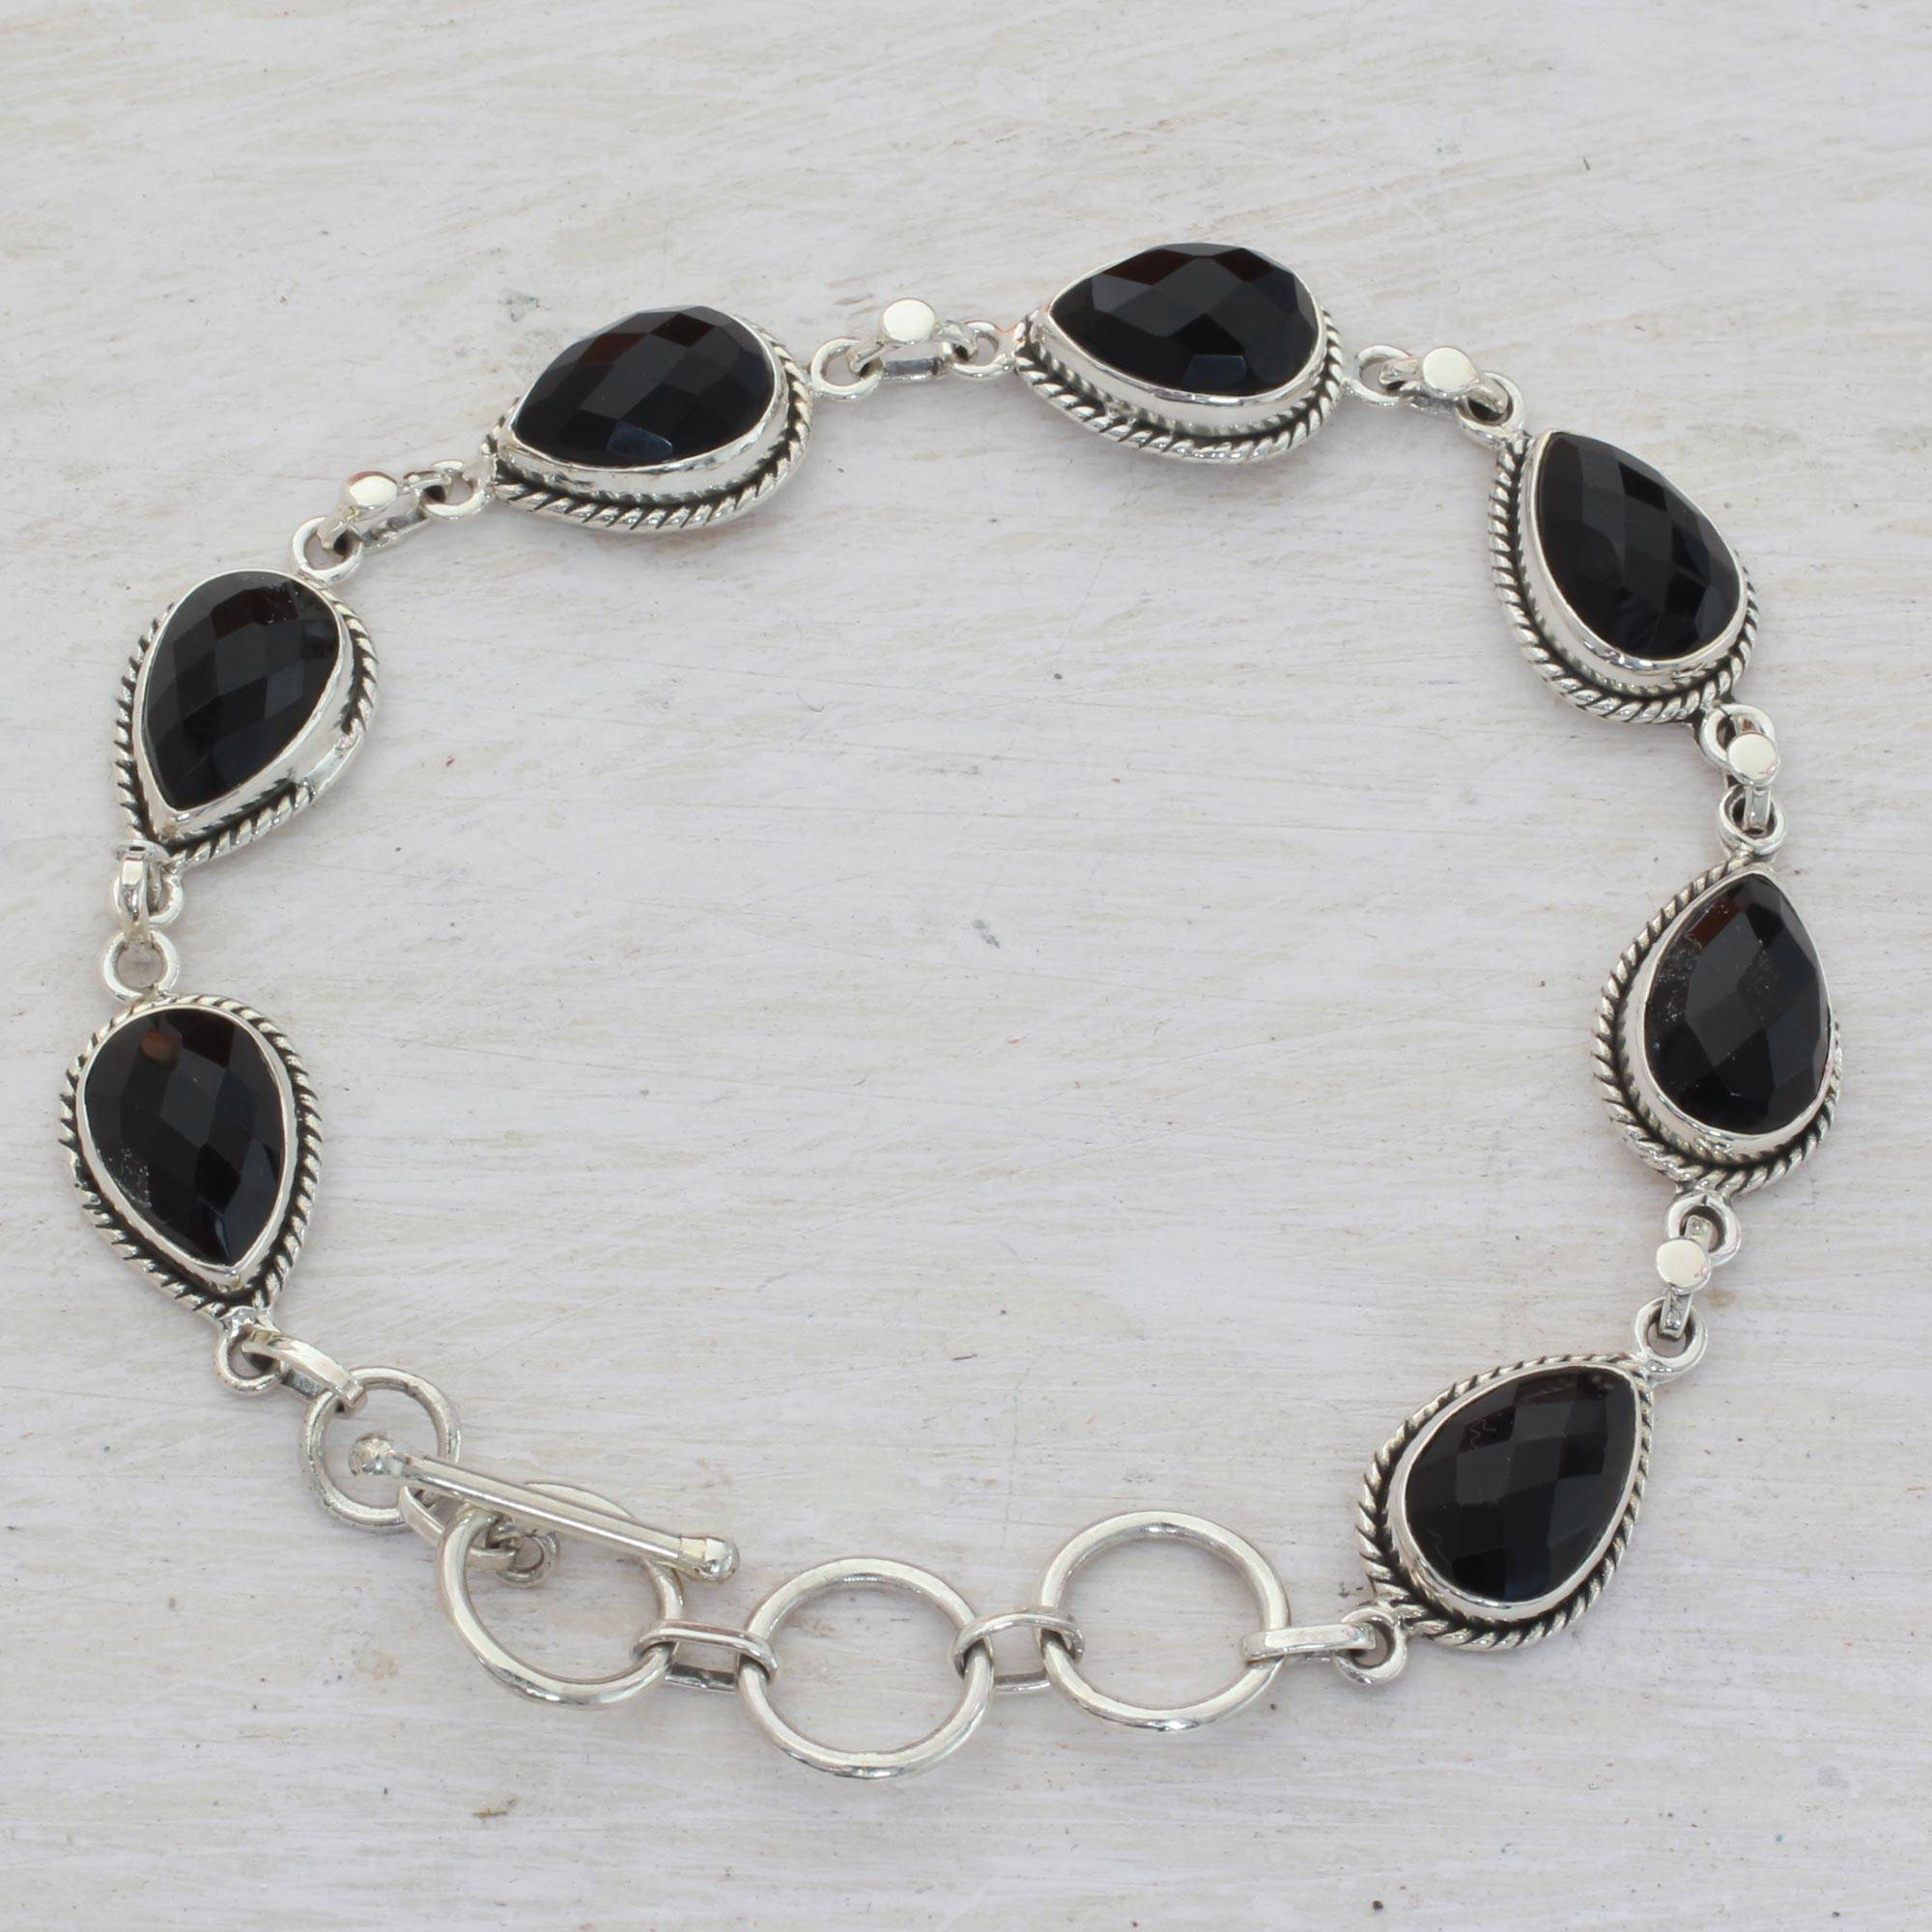 771d2bd44 Black Onyx and Sterling Silver Link Bracelet from India,